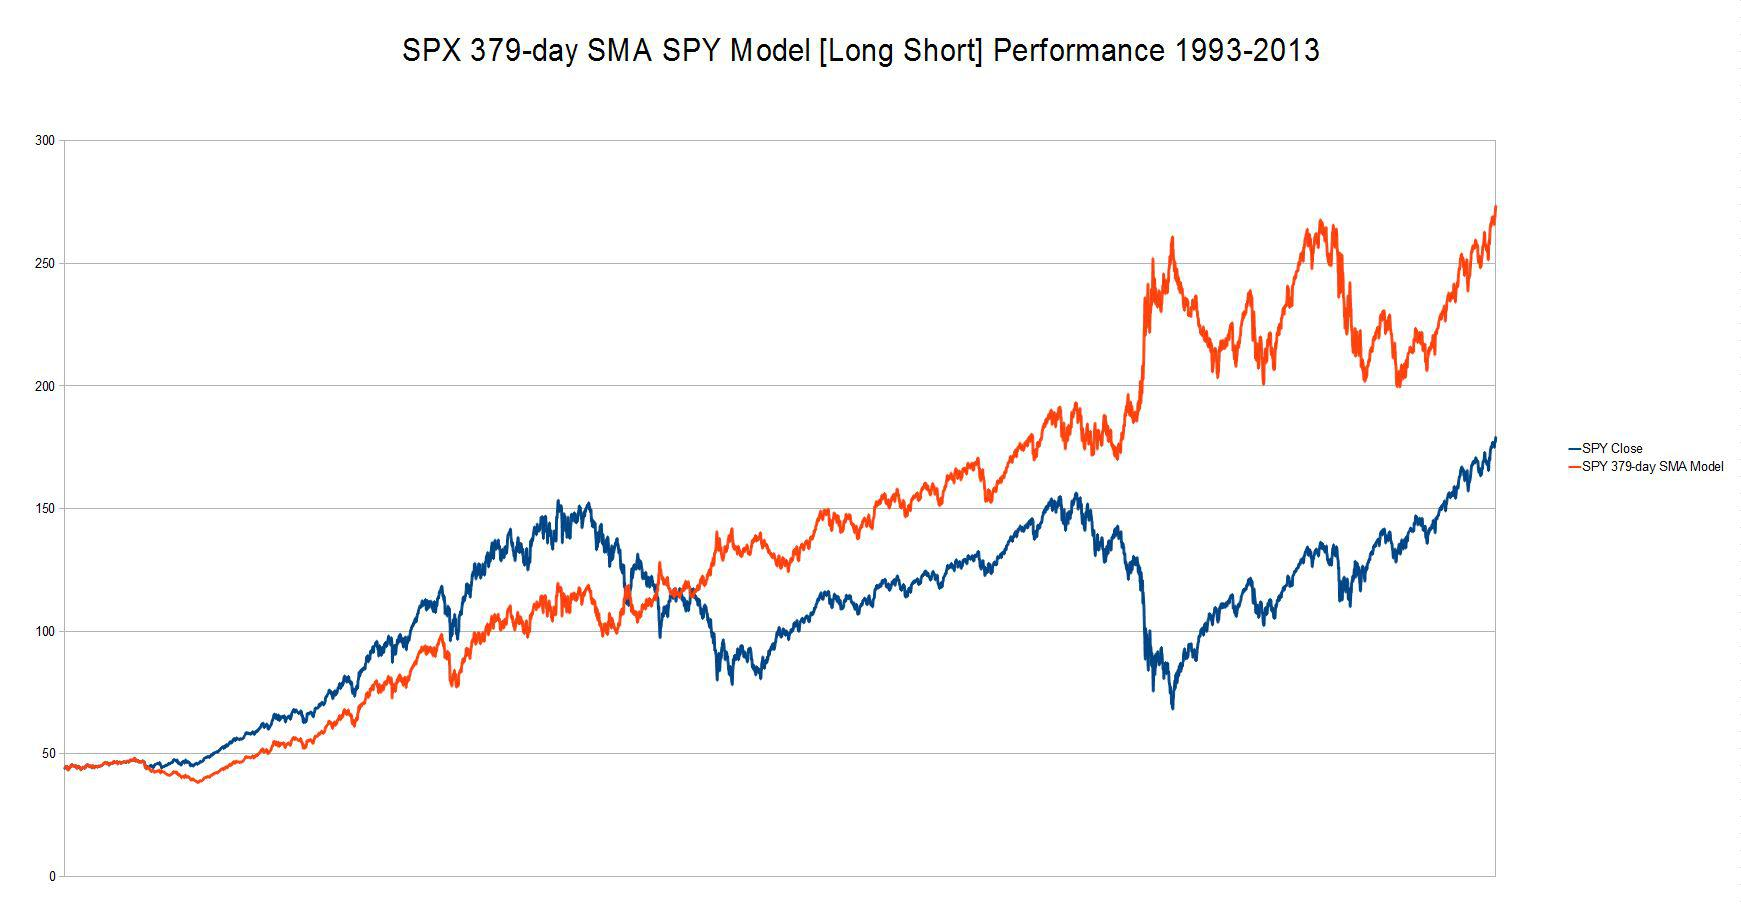 Improving A Simple SPY Trading Model - SPDR S&P 500 Trust